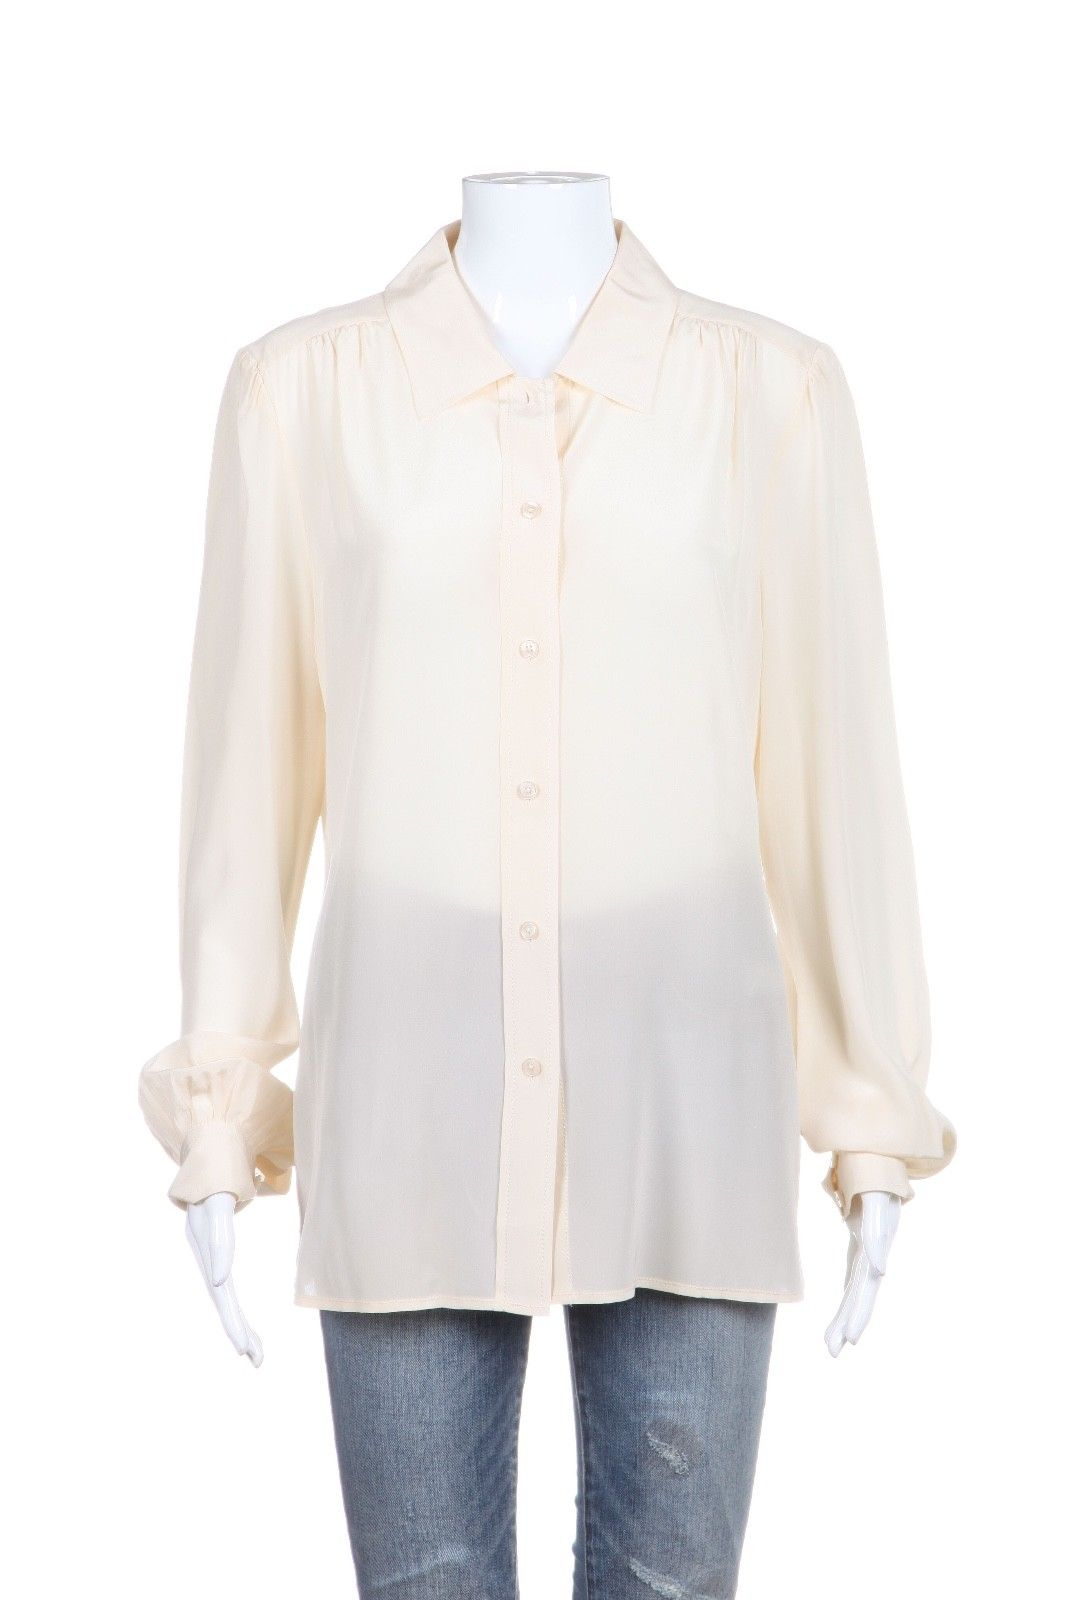 TORY BURCH Ivory Cream 100% Silk Button Down Blouse Size 12